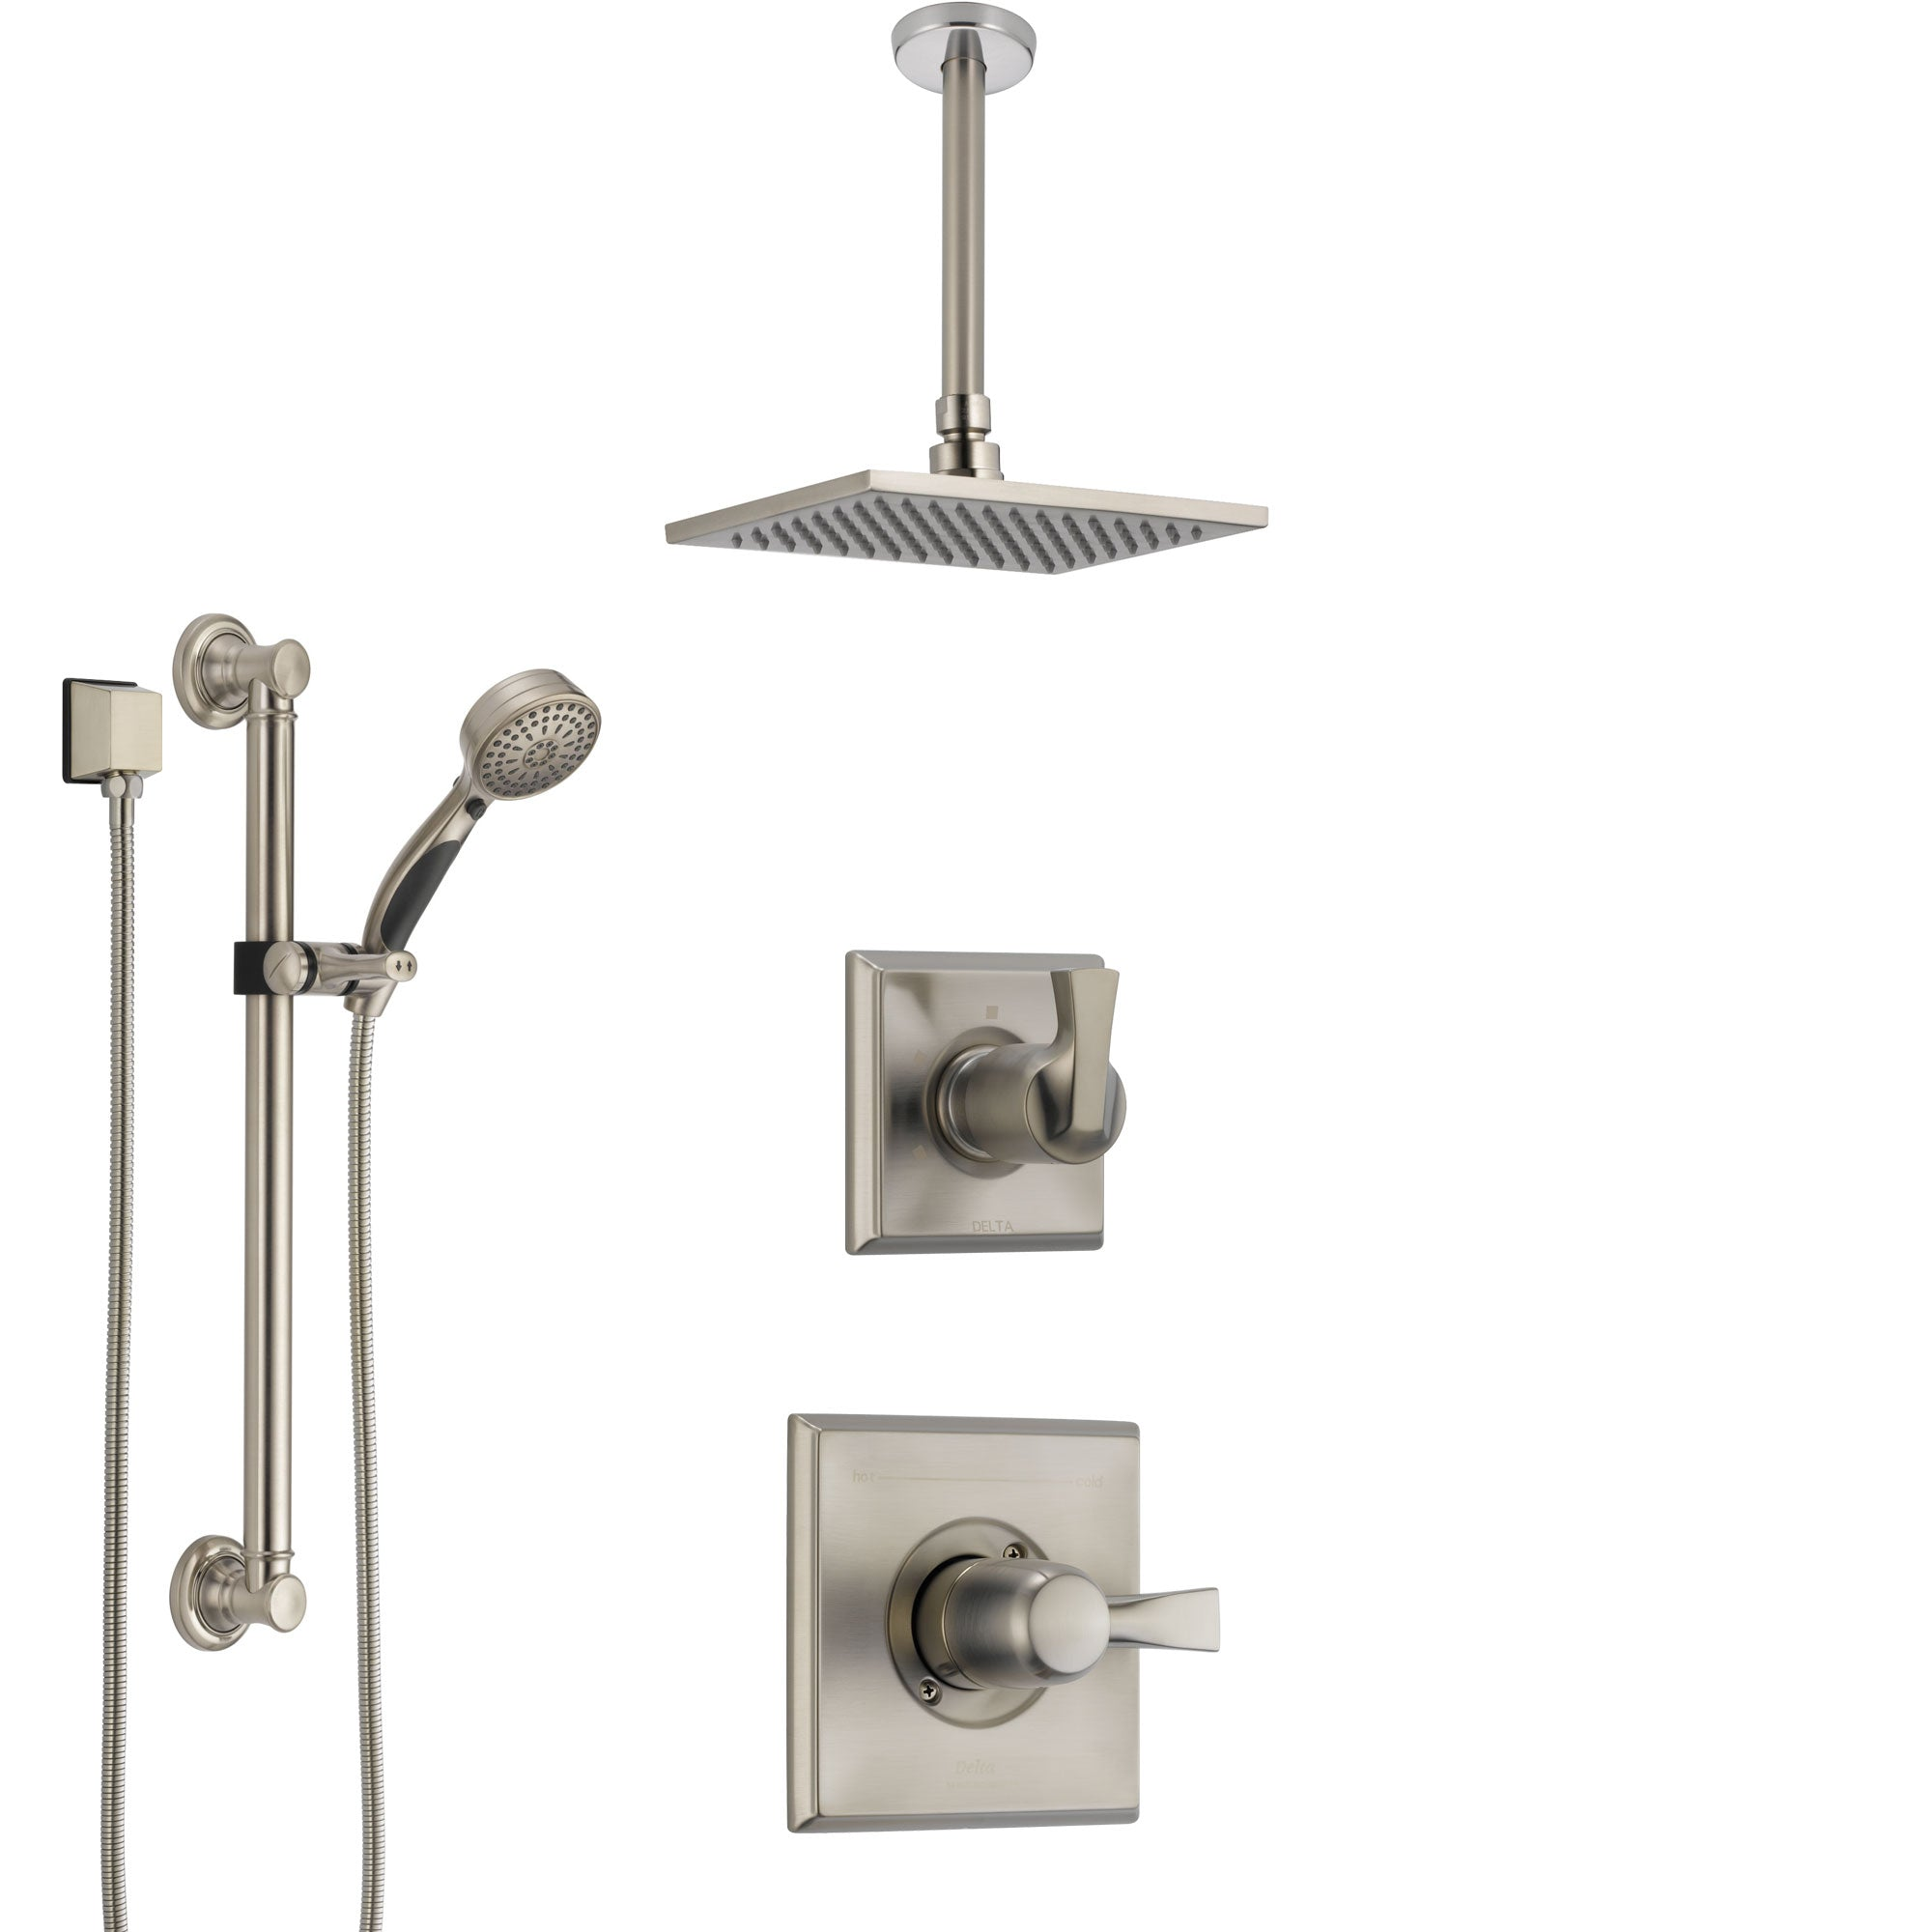 Delta Dryden Stainless Steel Finish Shower System with Control Handle, Diverter, Ceiling Mount Showerhead, and Hand Shower with Grab Bar SS1451SS2